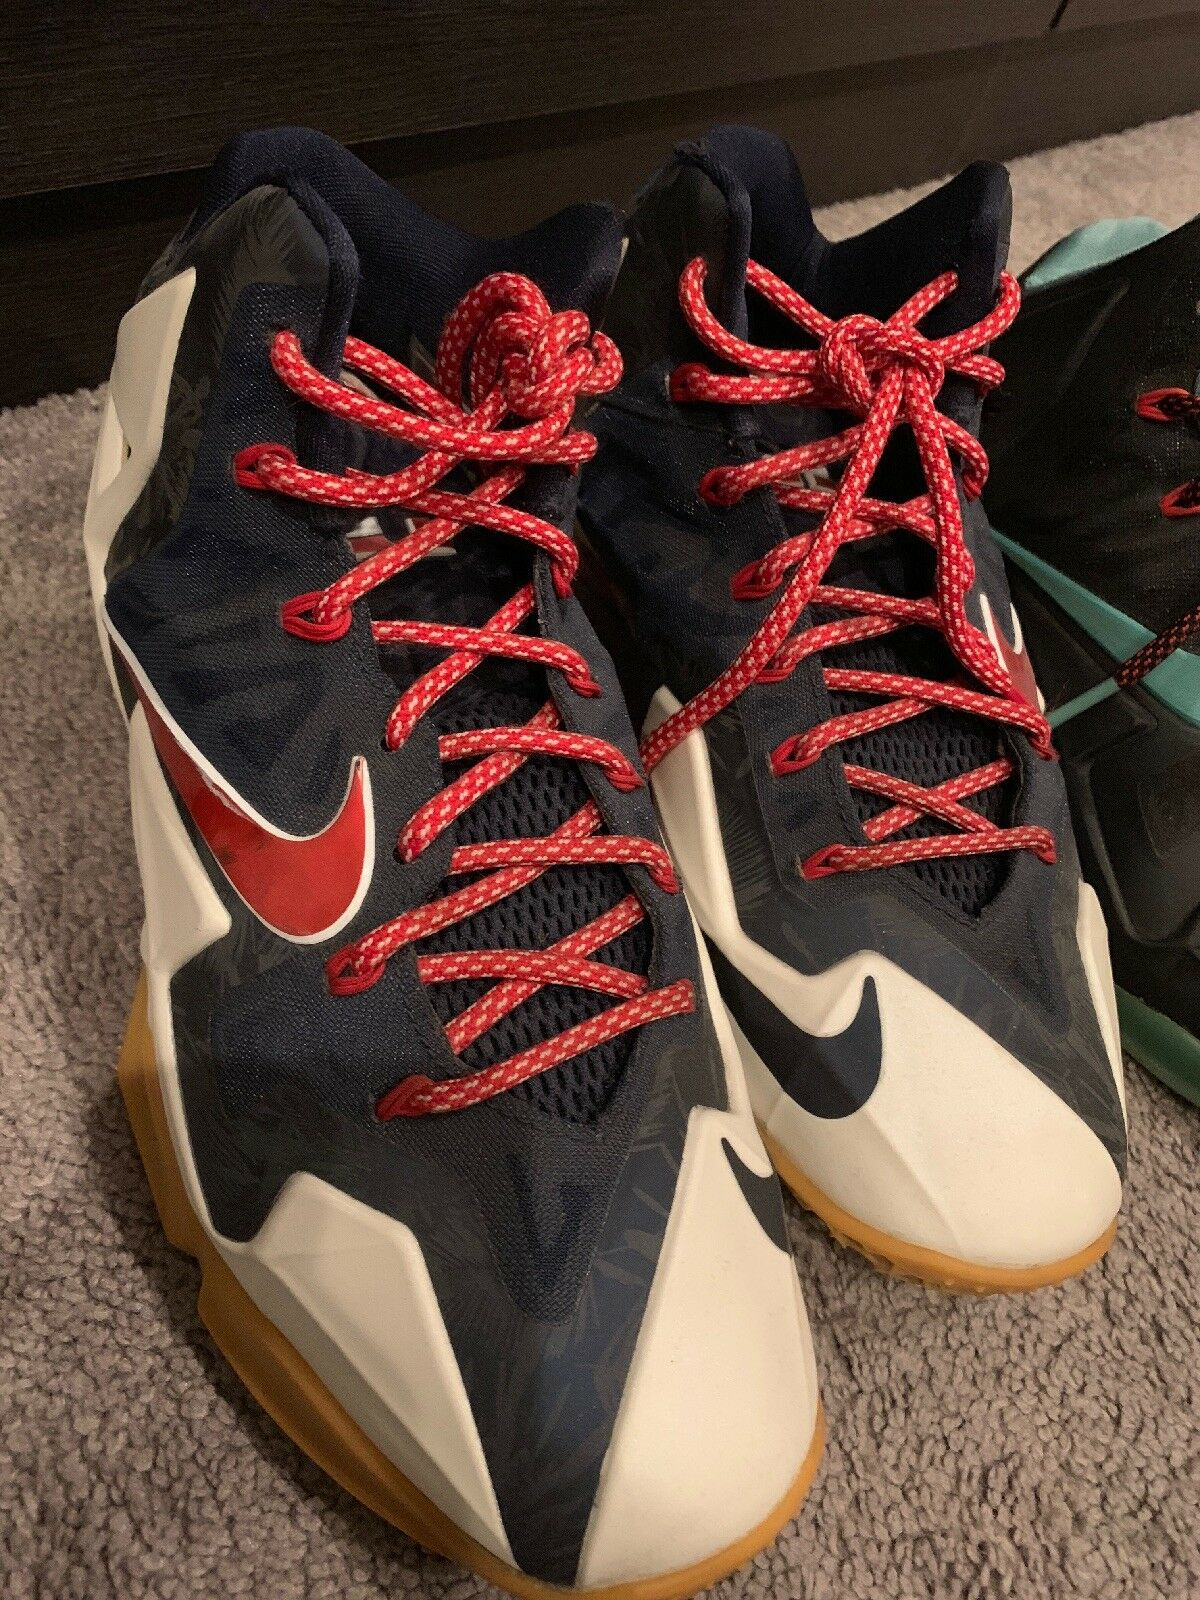 LEBRON 11 Size 9 And 8.5 SOLD AS IS RETRO YEEZY JORDAN KANYE